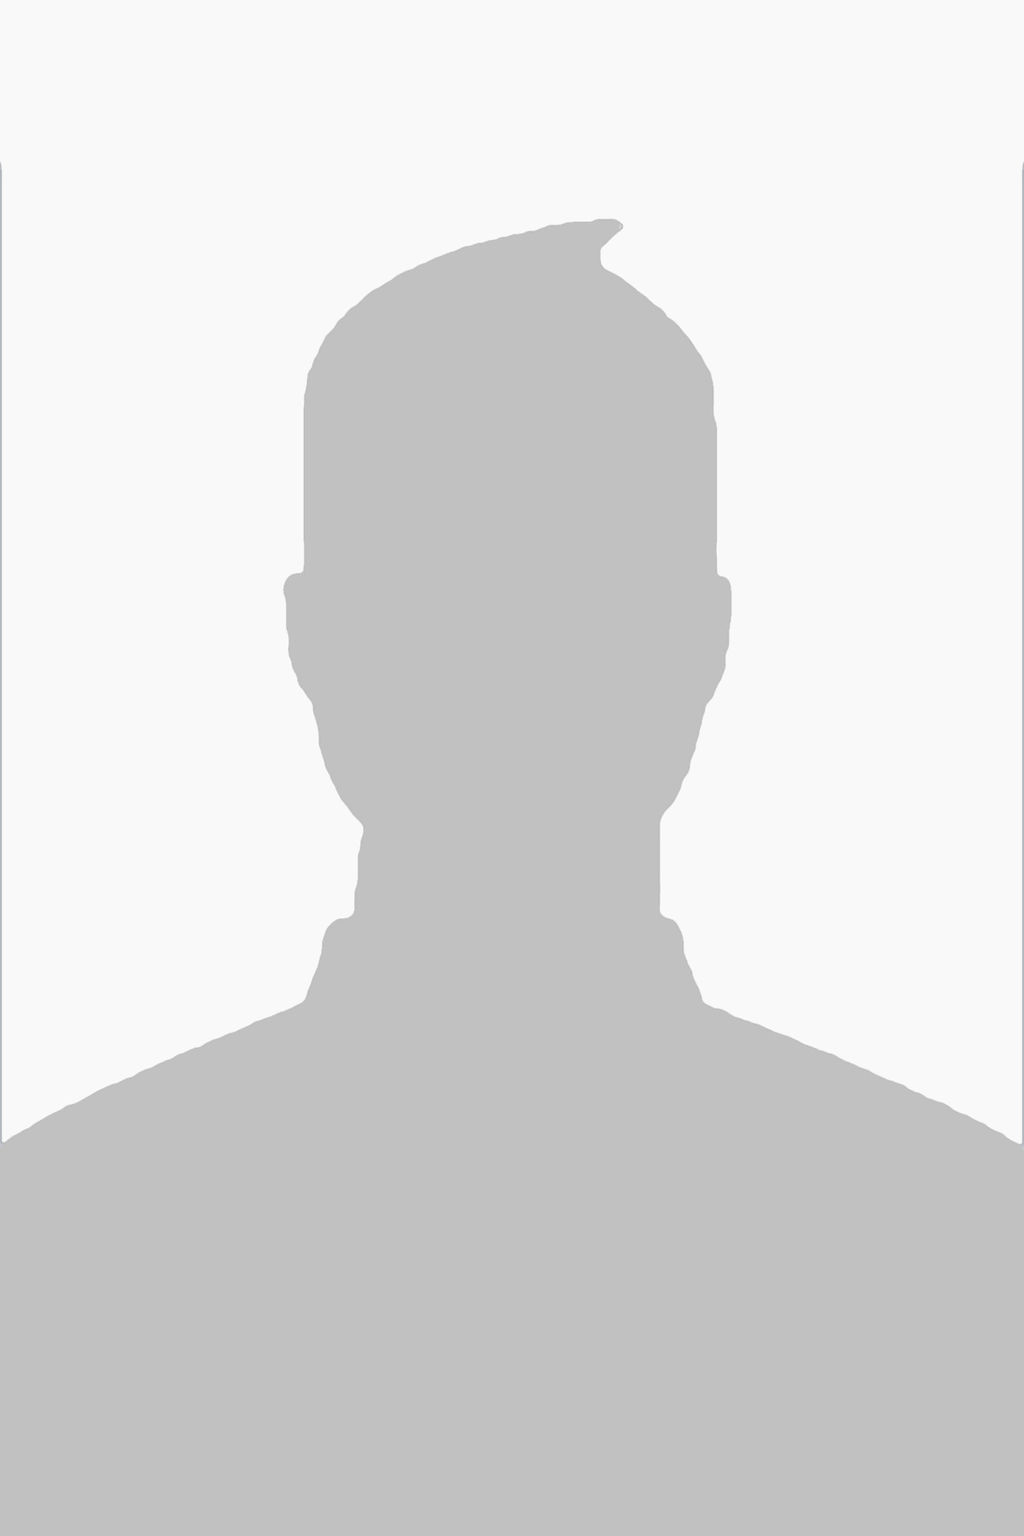 Blank male profile